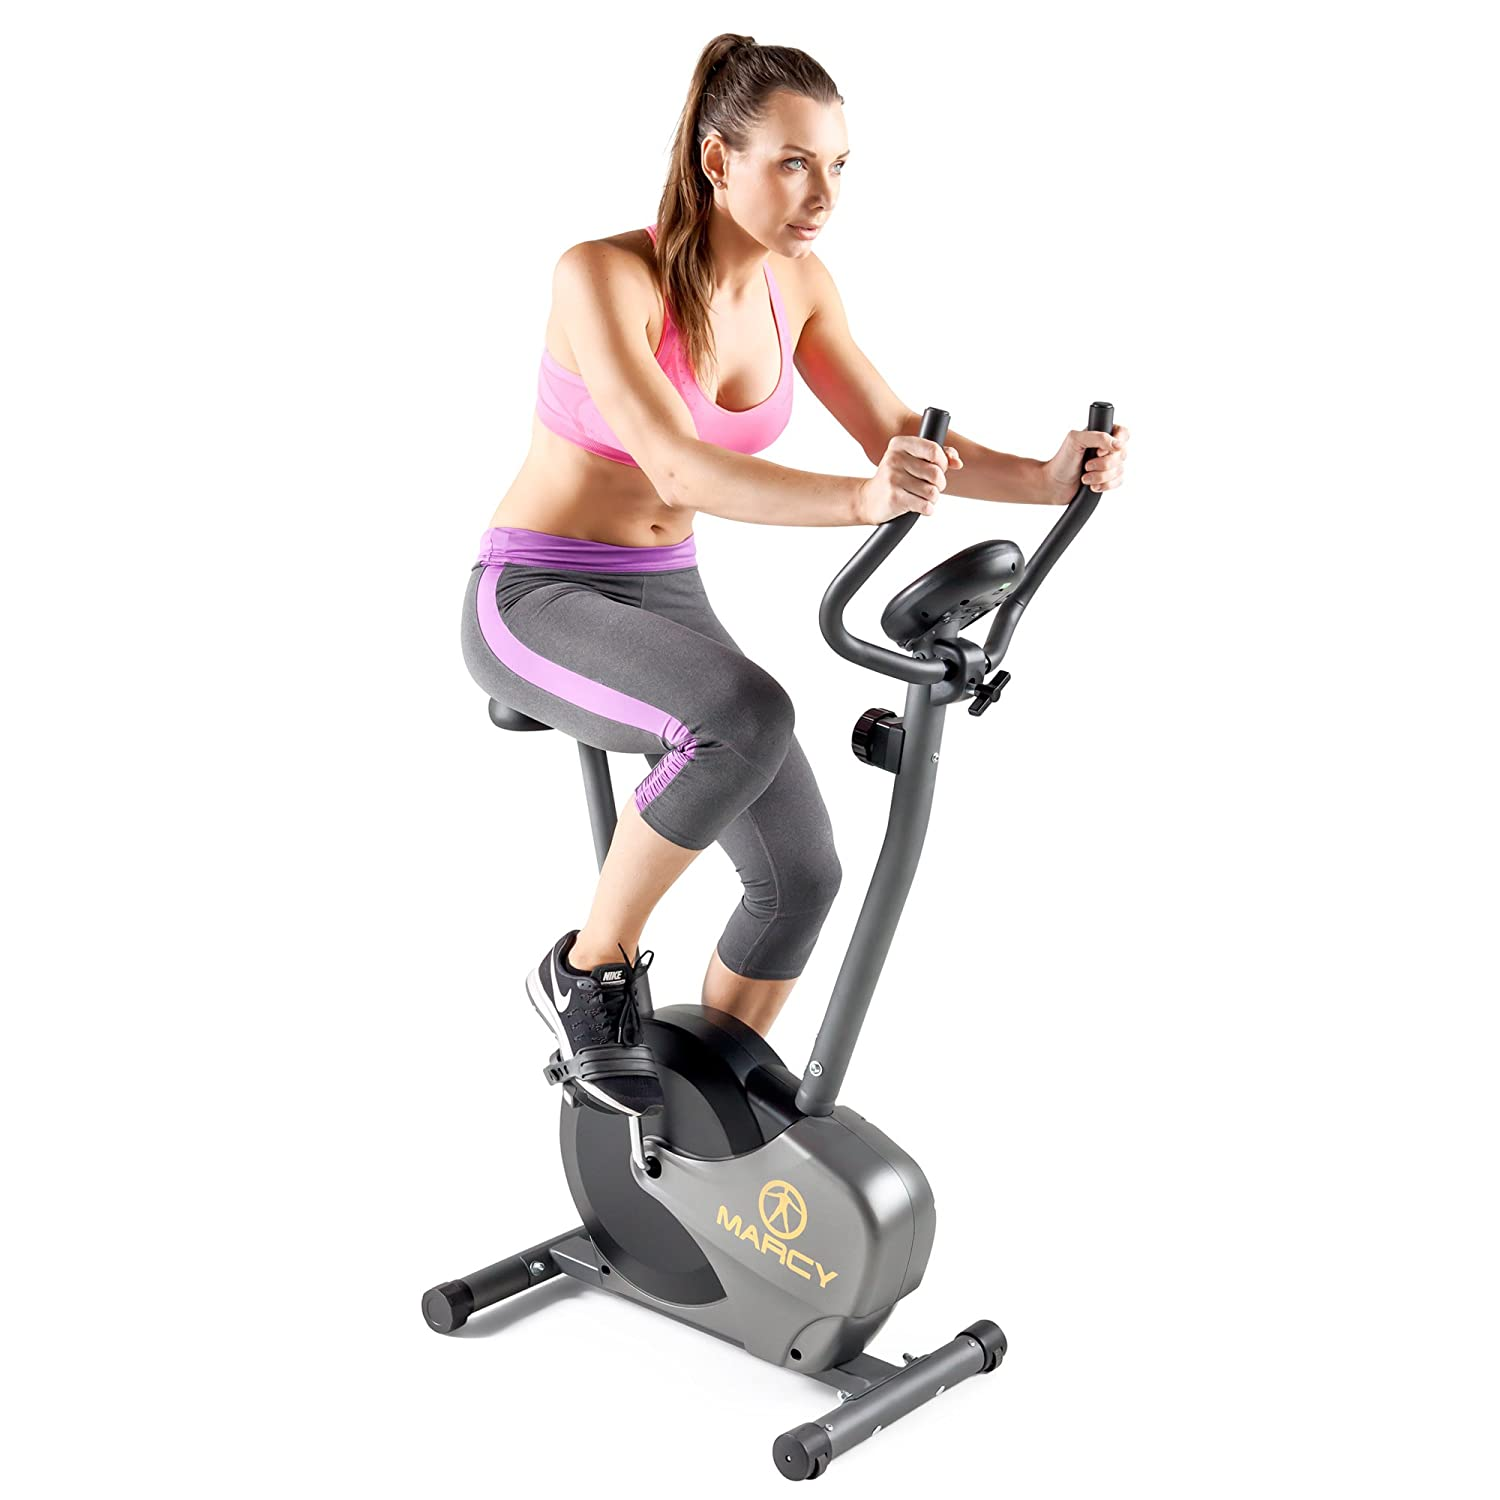 1f89a3087b6 Amazon.com   Marcy Magnetic Resistance Upright Exercise Bike with Eight  Preset Resistance Levels for Cardio Workout and Strength Training NS-714U    Football ...